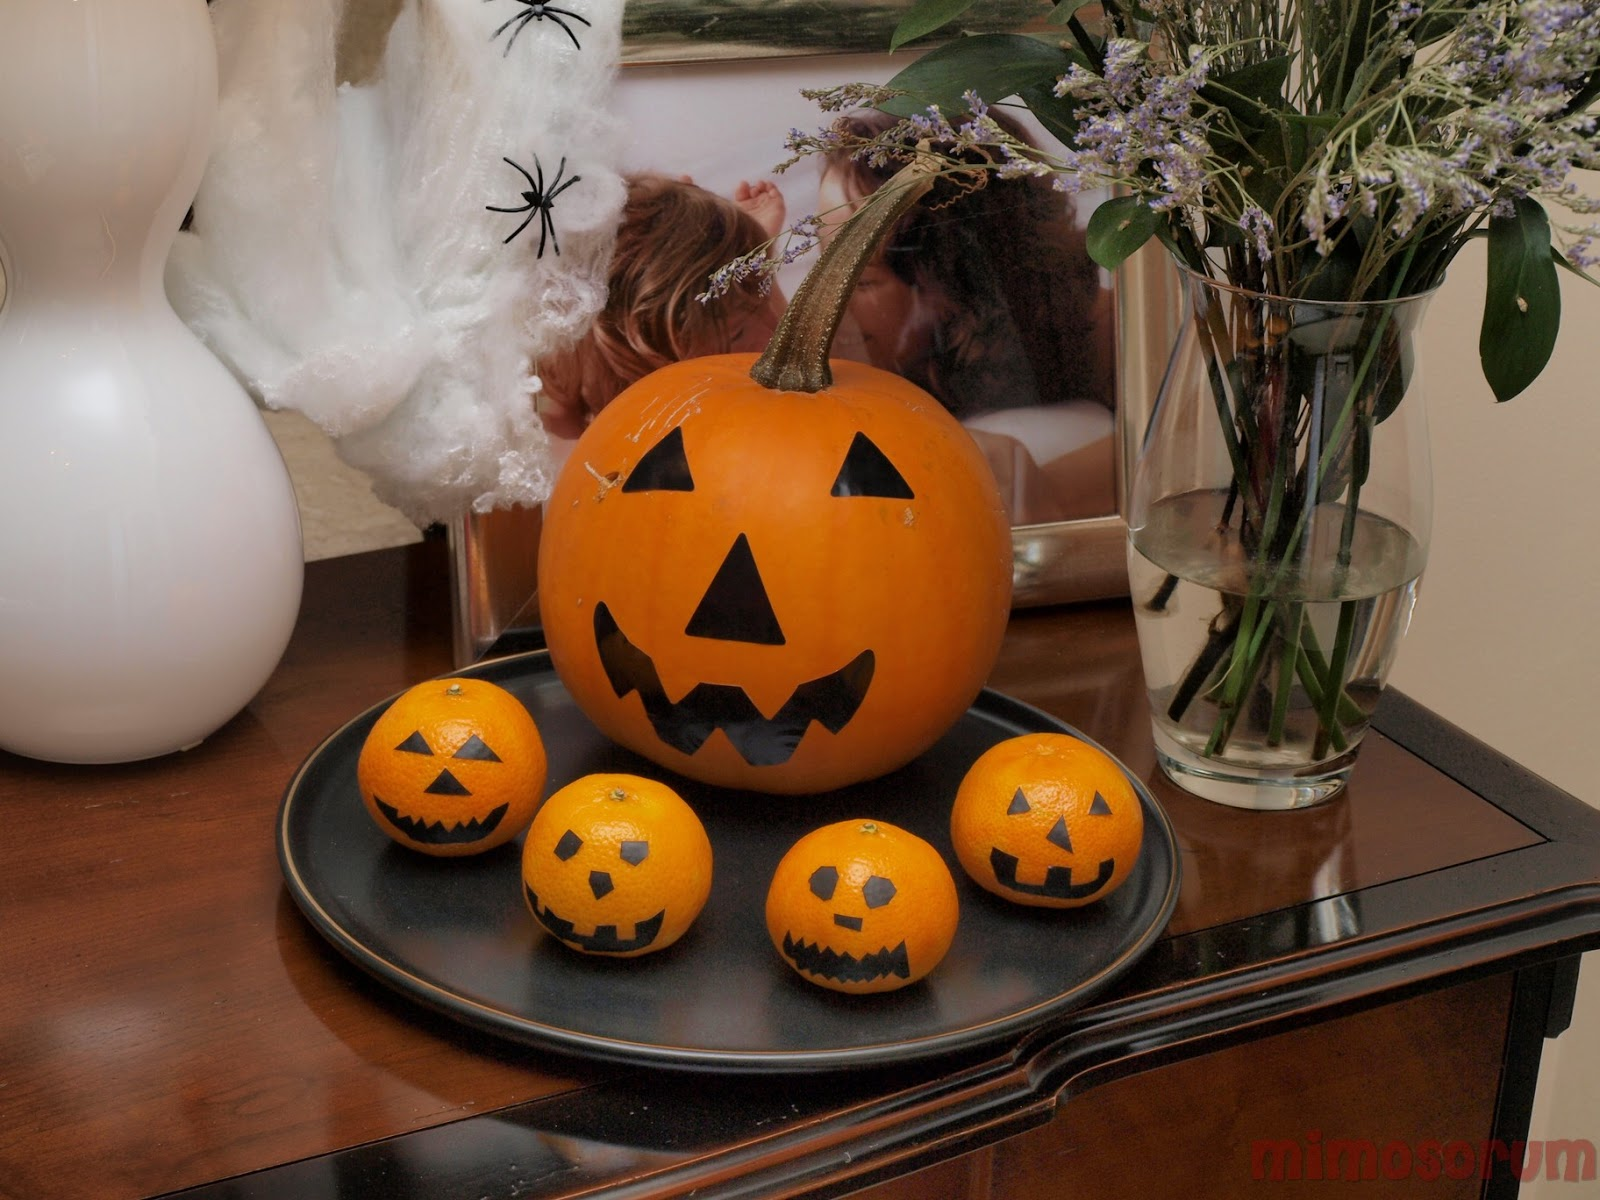 Decoración Halloween con mandarinas.Mimosorum